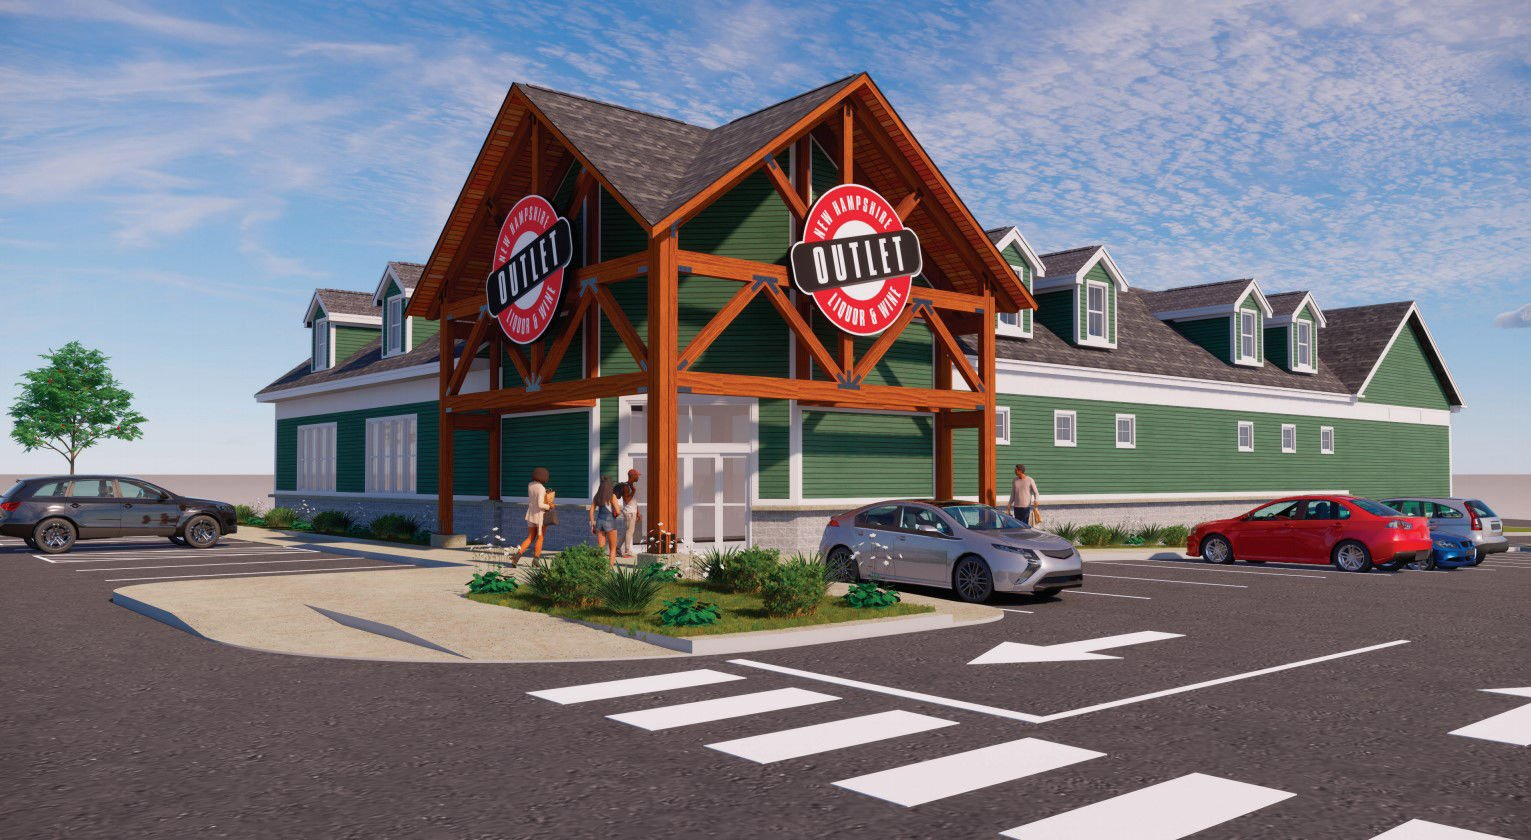 Larger liquor outlet and Marshalls among changes planned for Rindge plaza